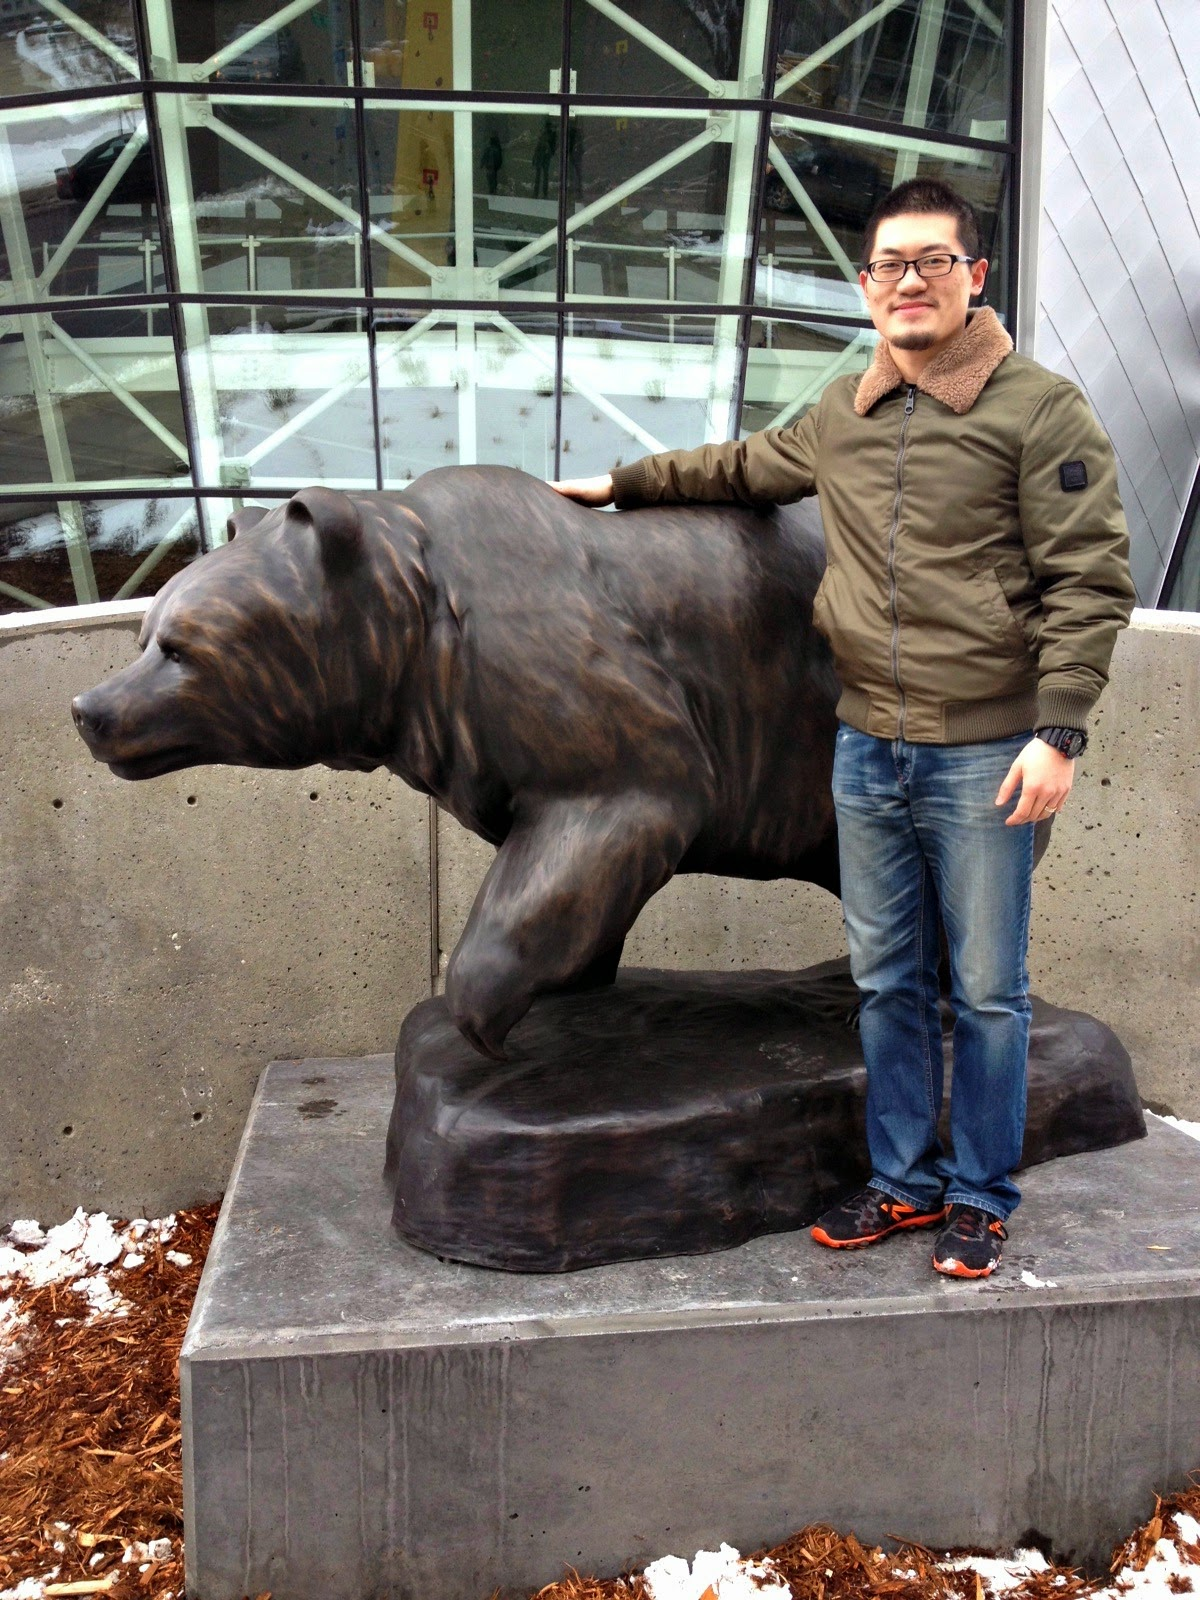 Standing with the UAlberta Alberta Bear